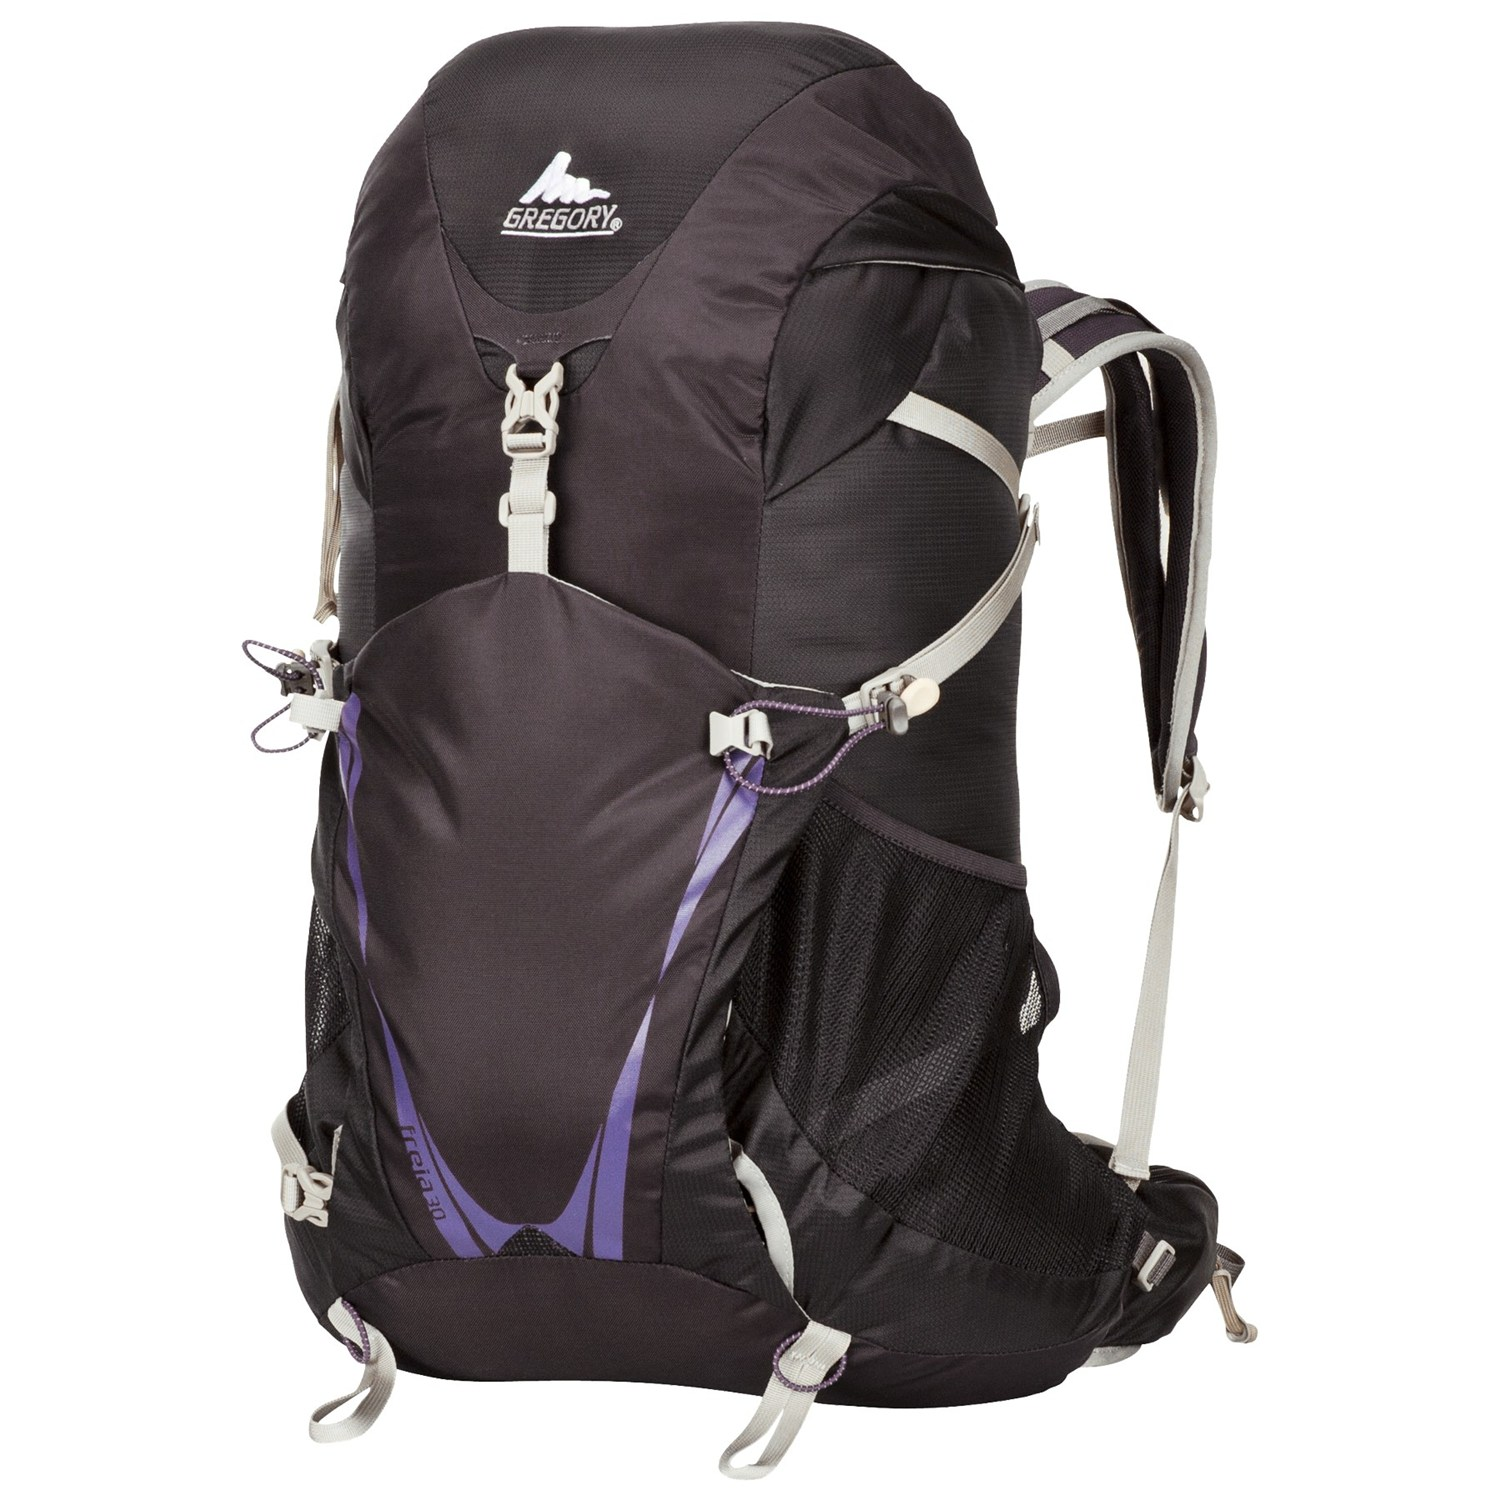 Womens Gregory Freia Backpack Review